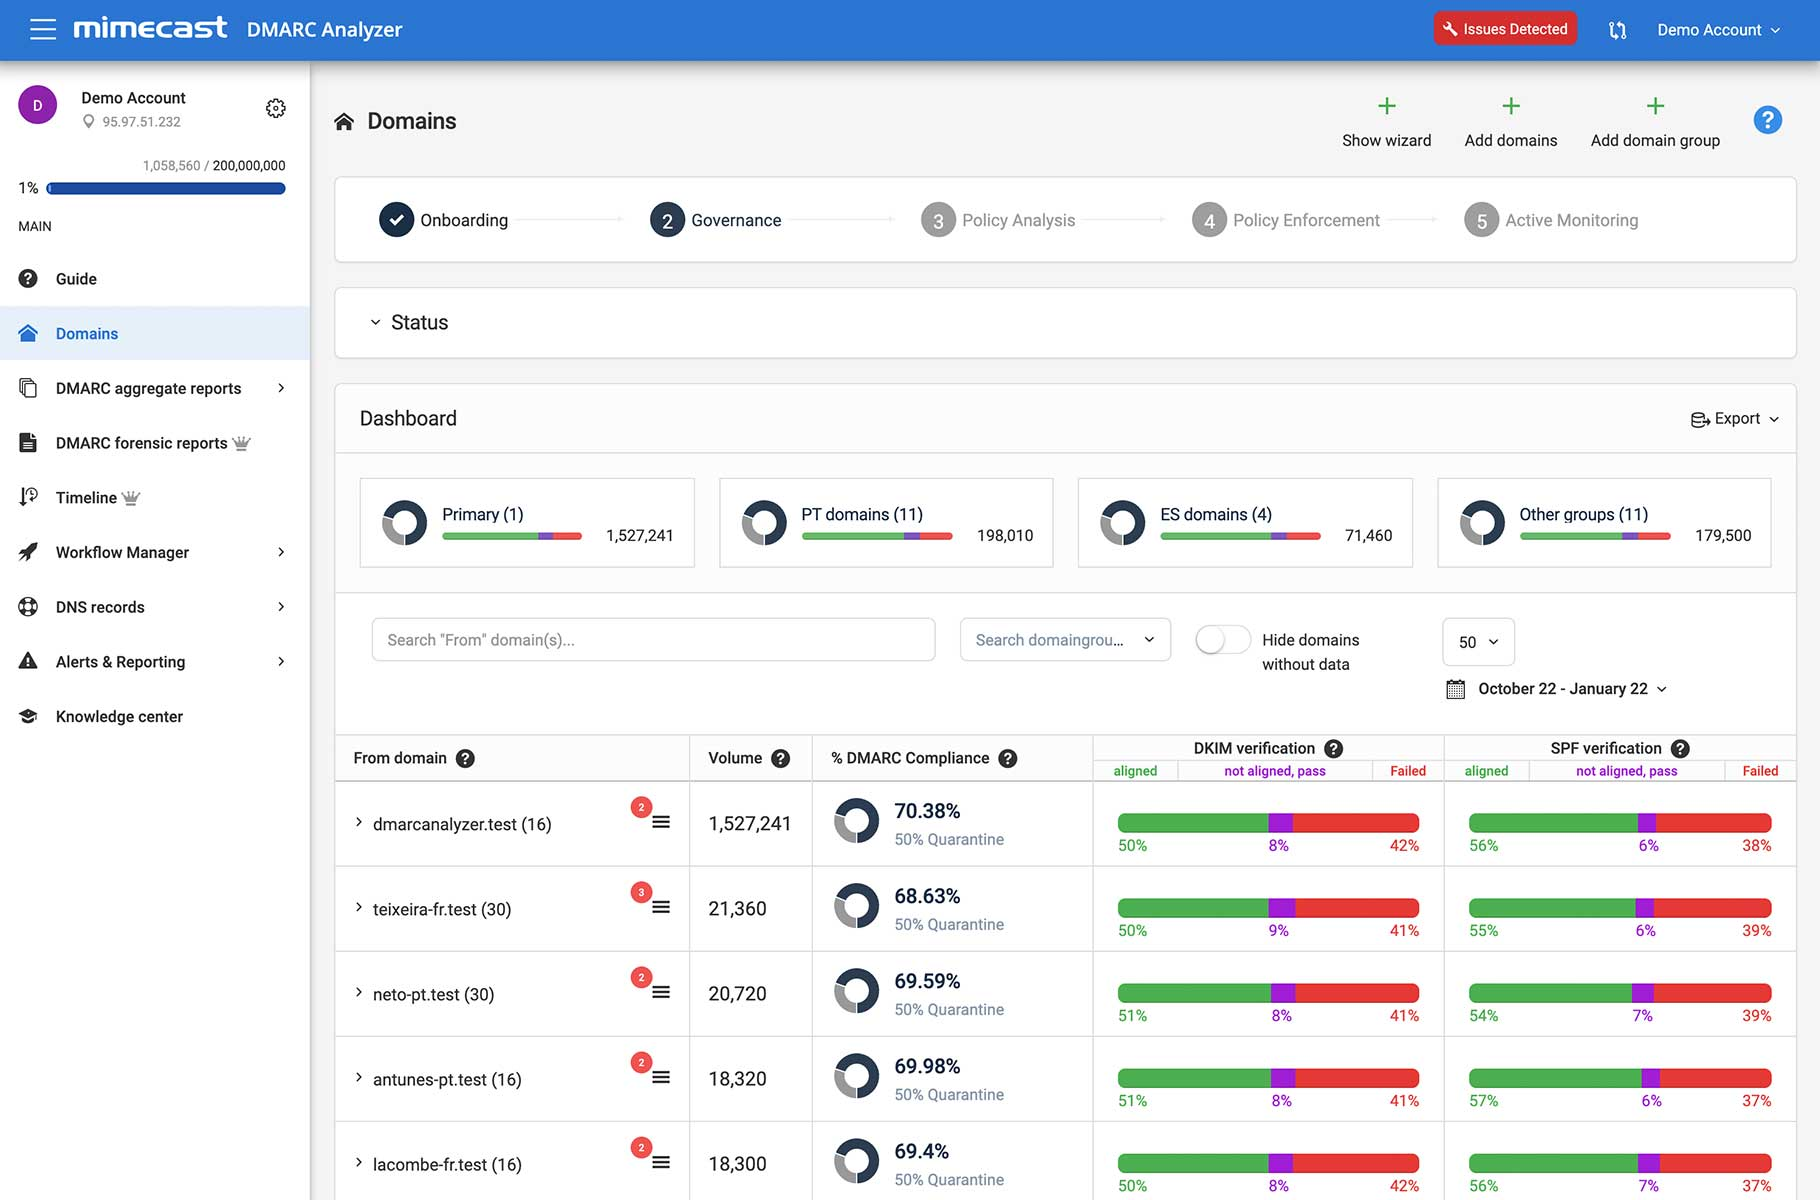 DMARC Analyzer - Domain dashboard